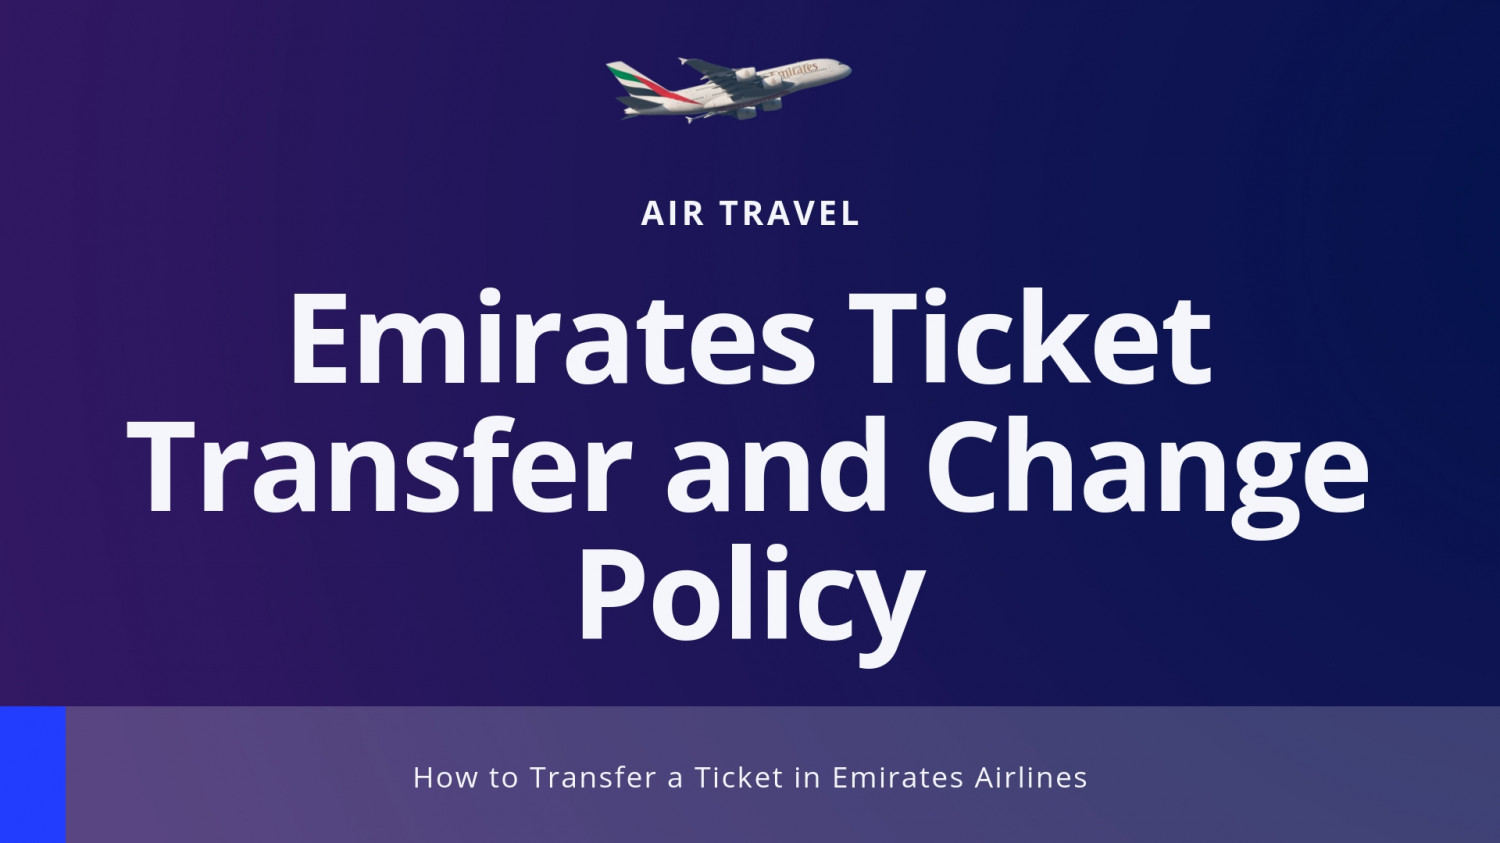 Emirates Ticket Transfer and Change Policy Infographic